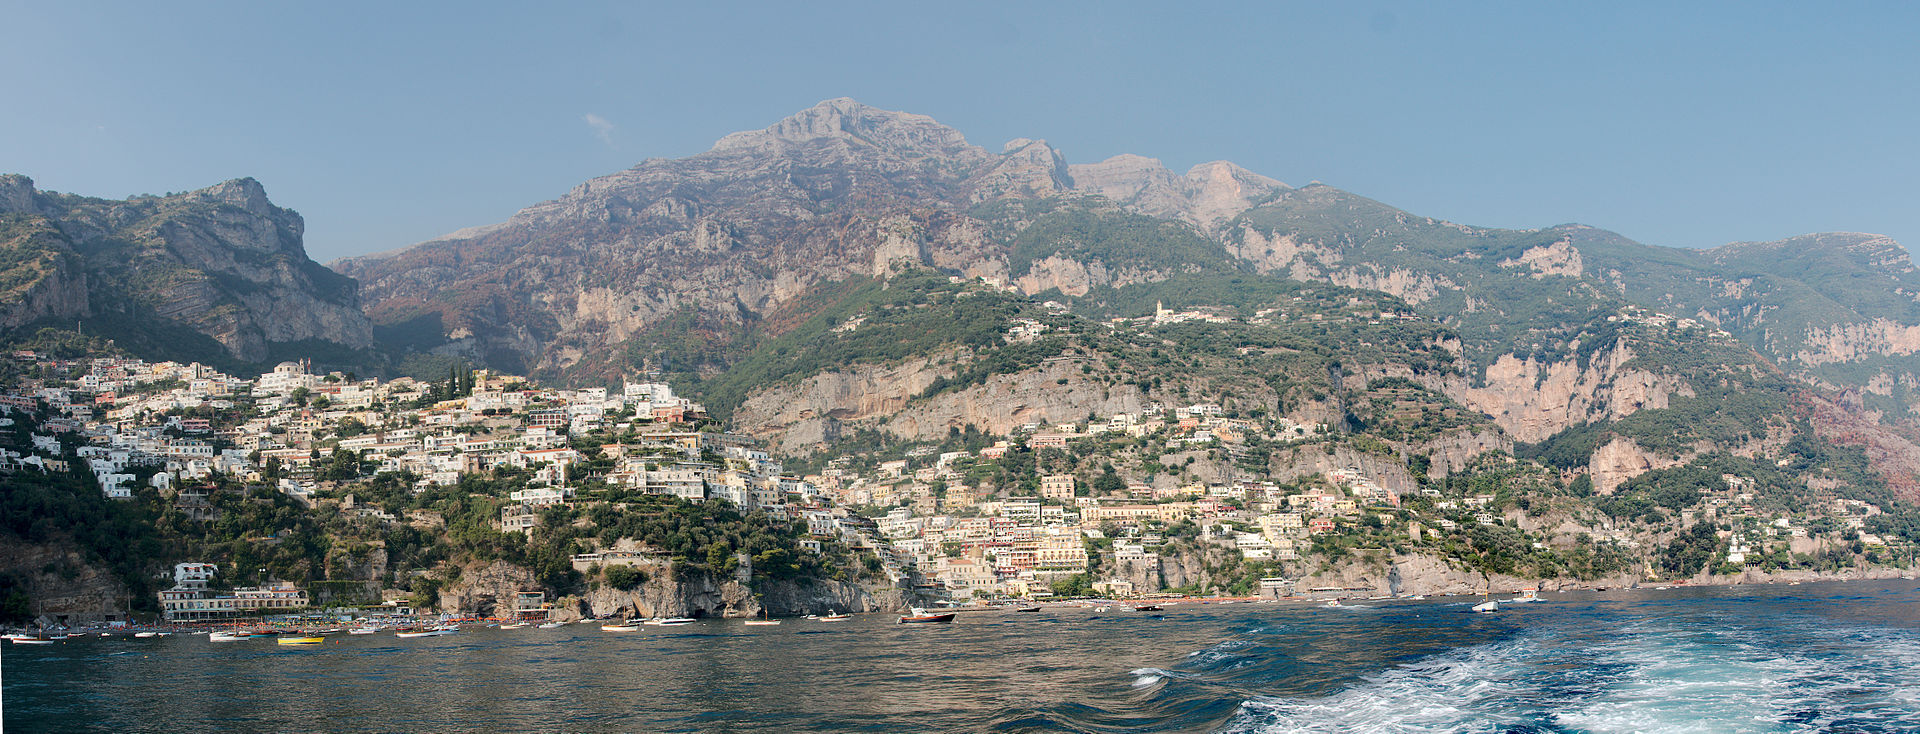 Positano_from_seaside